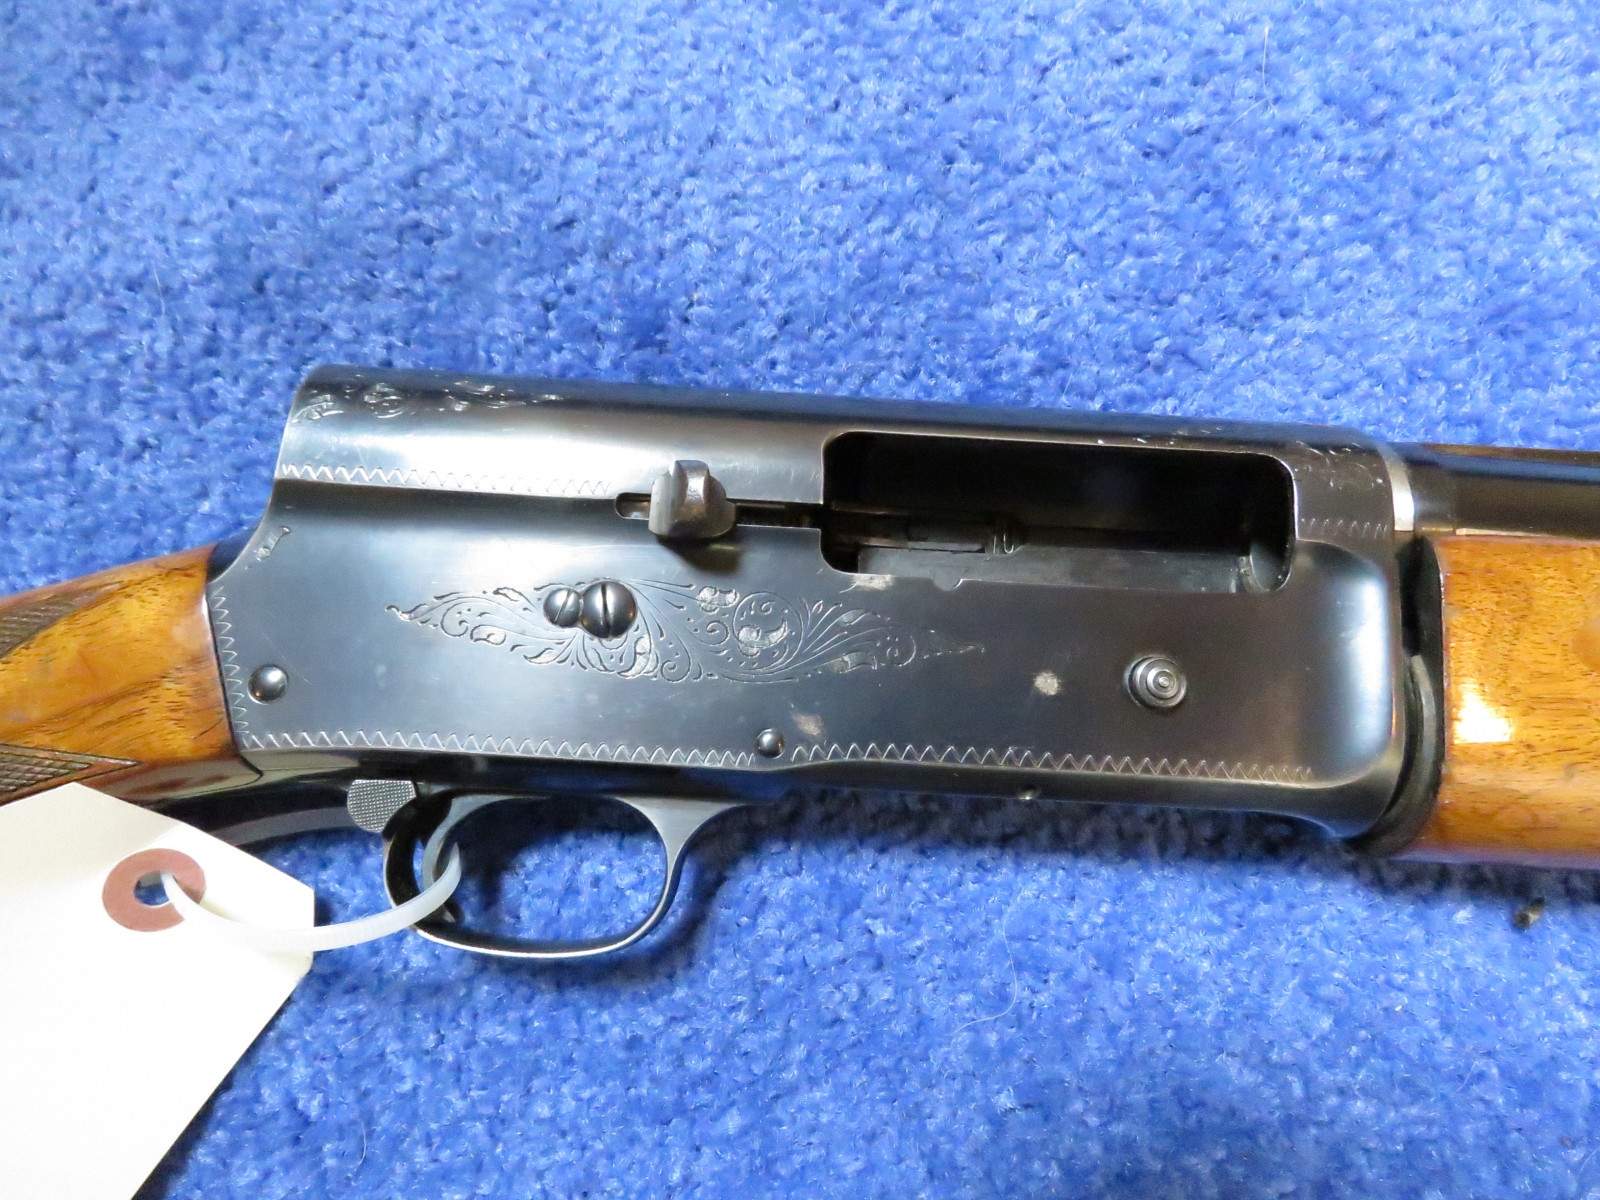 Browning Semi-automatic 12 Gauge Shotgun - Image 5